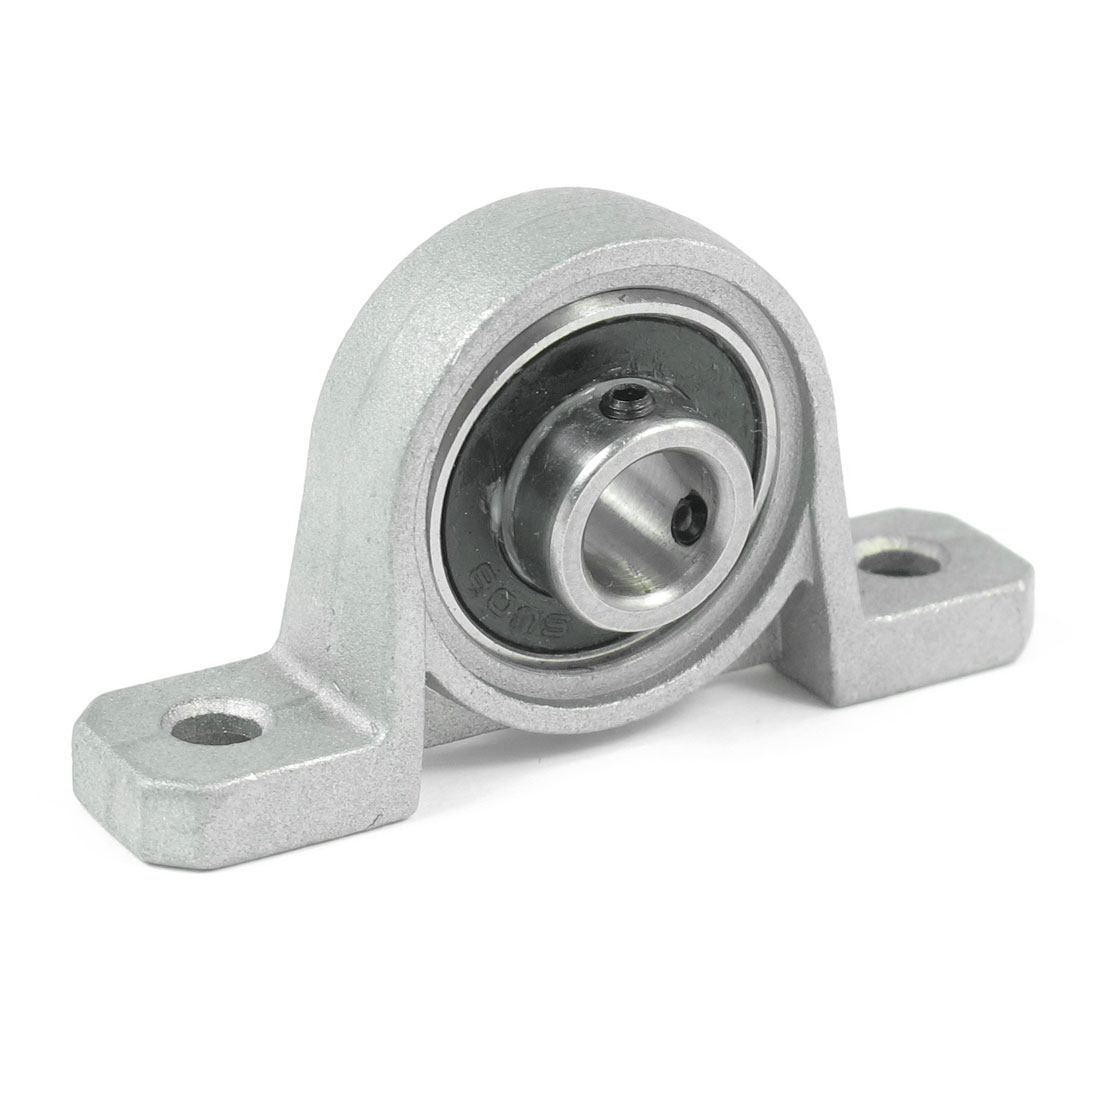 Silver Tone SU08 Pillow Block Cast Housing 8 x 20 x 6mm Insert Ball Bearing